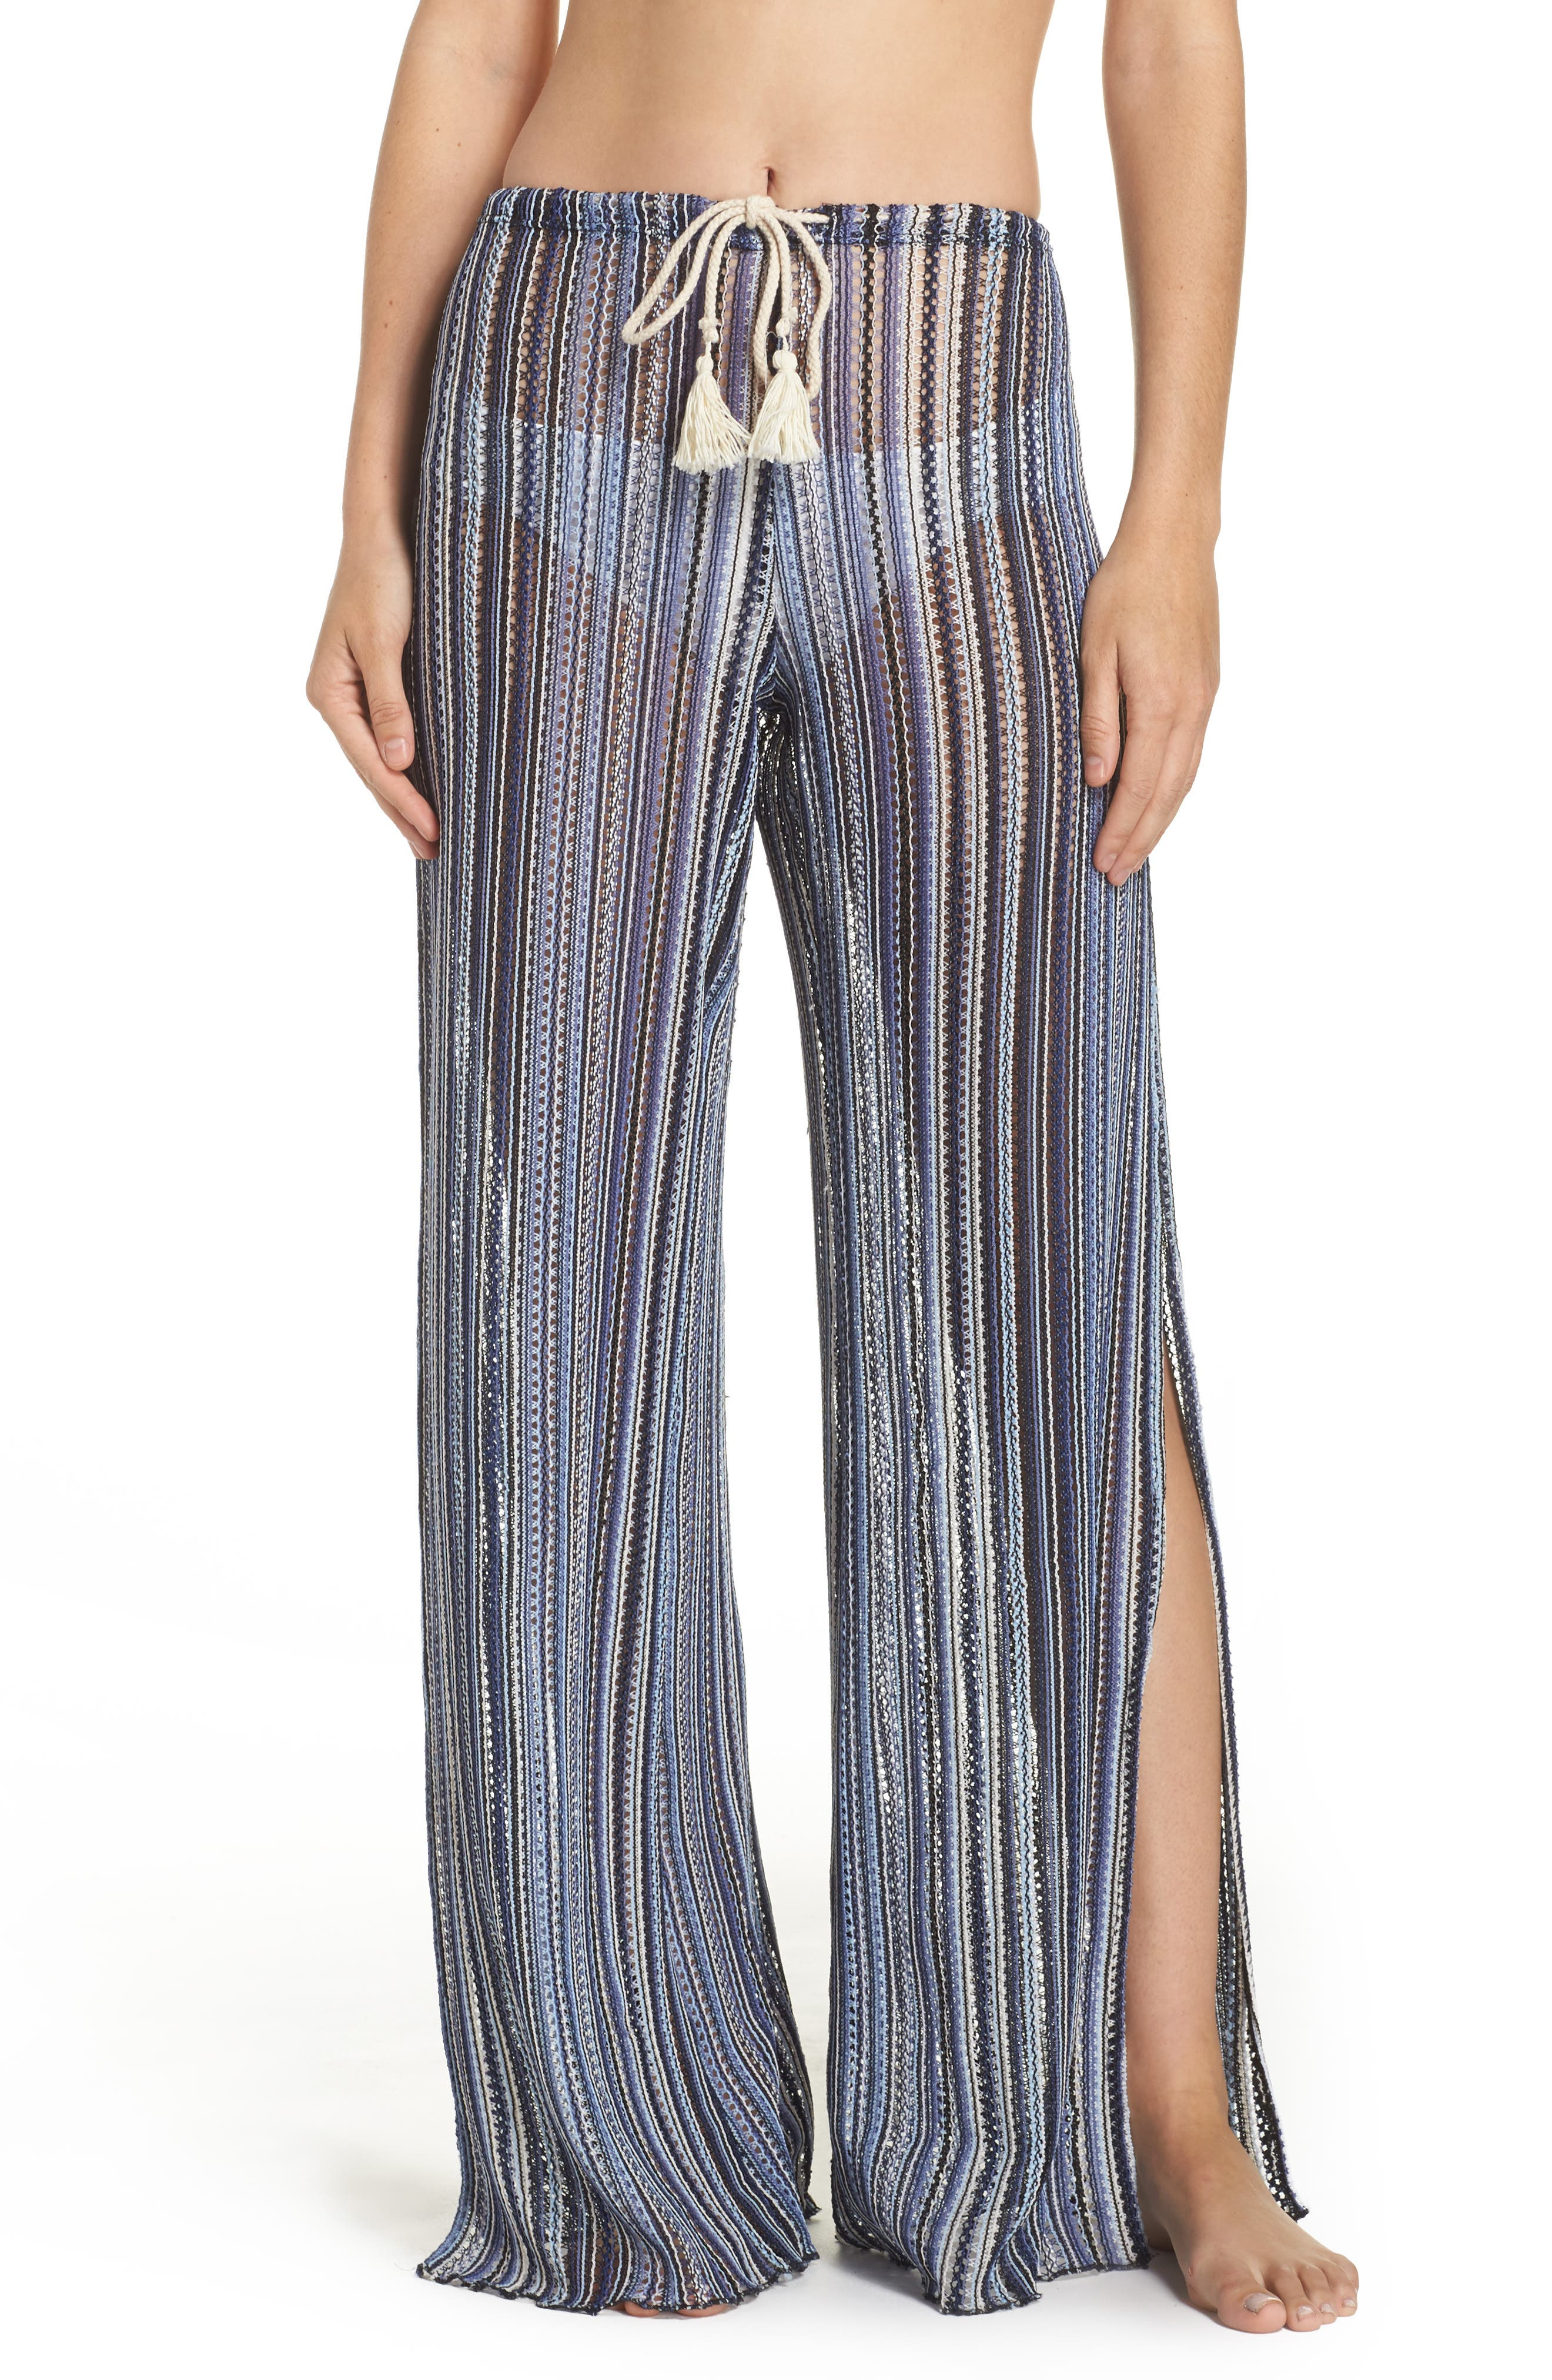 Pierside Cover-Up Flyaway Pants,                         Main,                         color, Multi